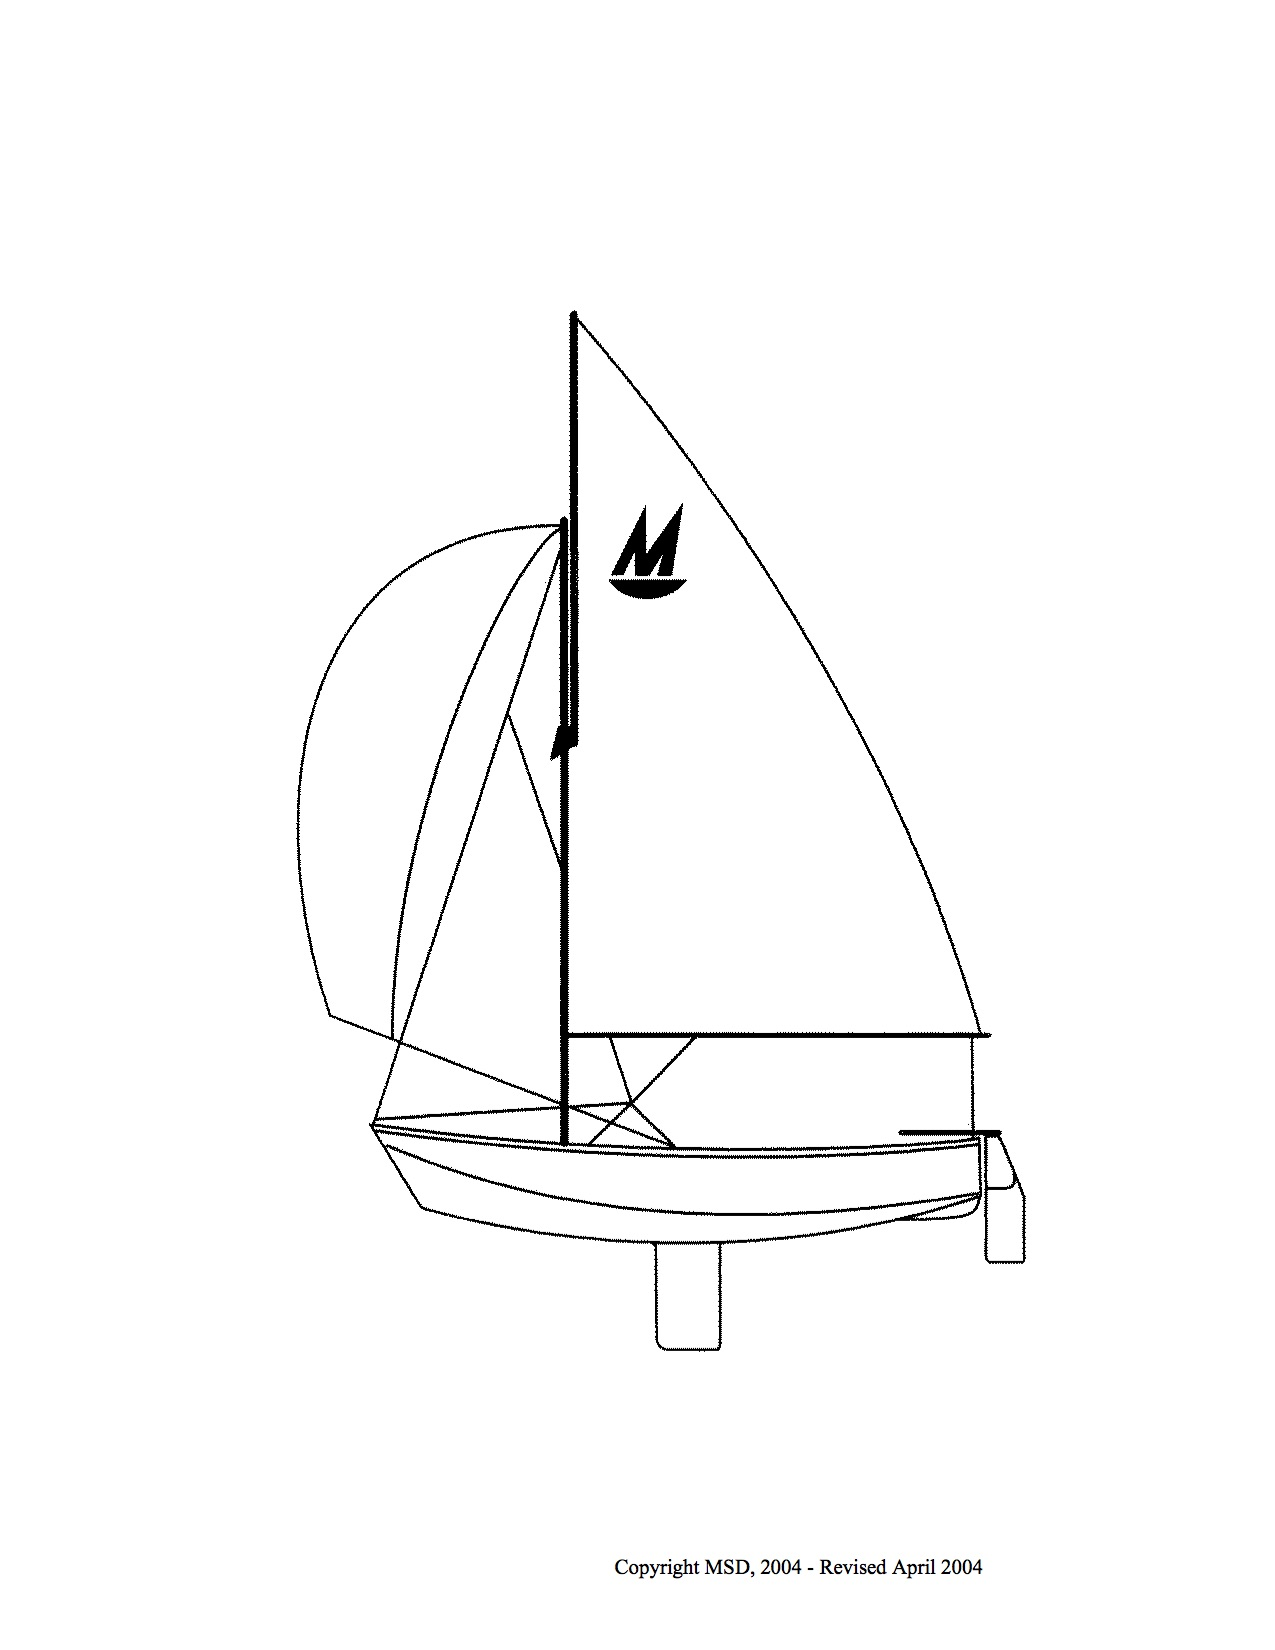 Mirror Dinghy mirror_canadian_building_instructions0.jpg